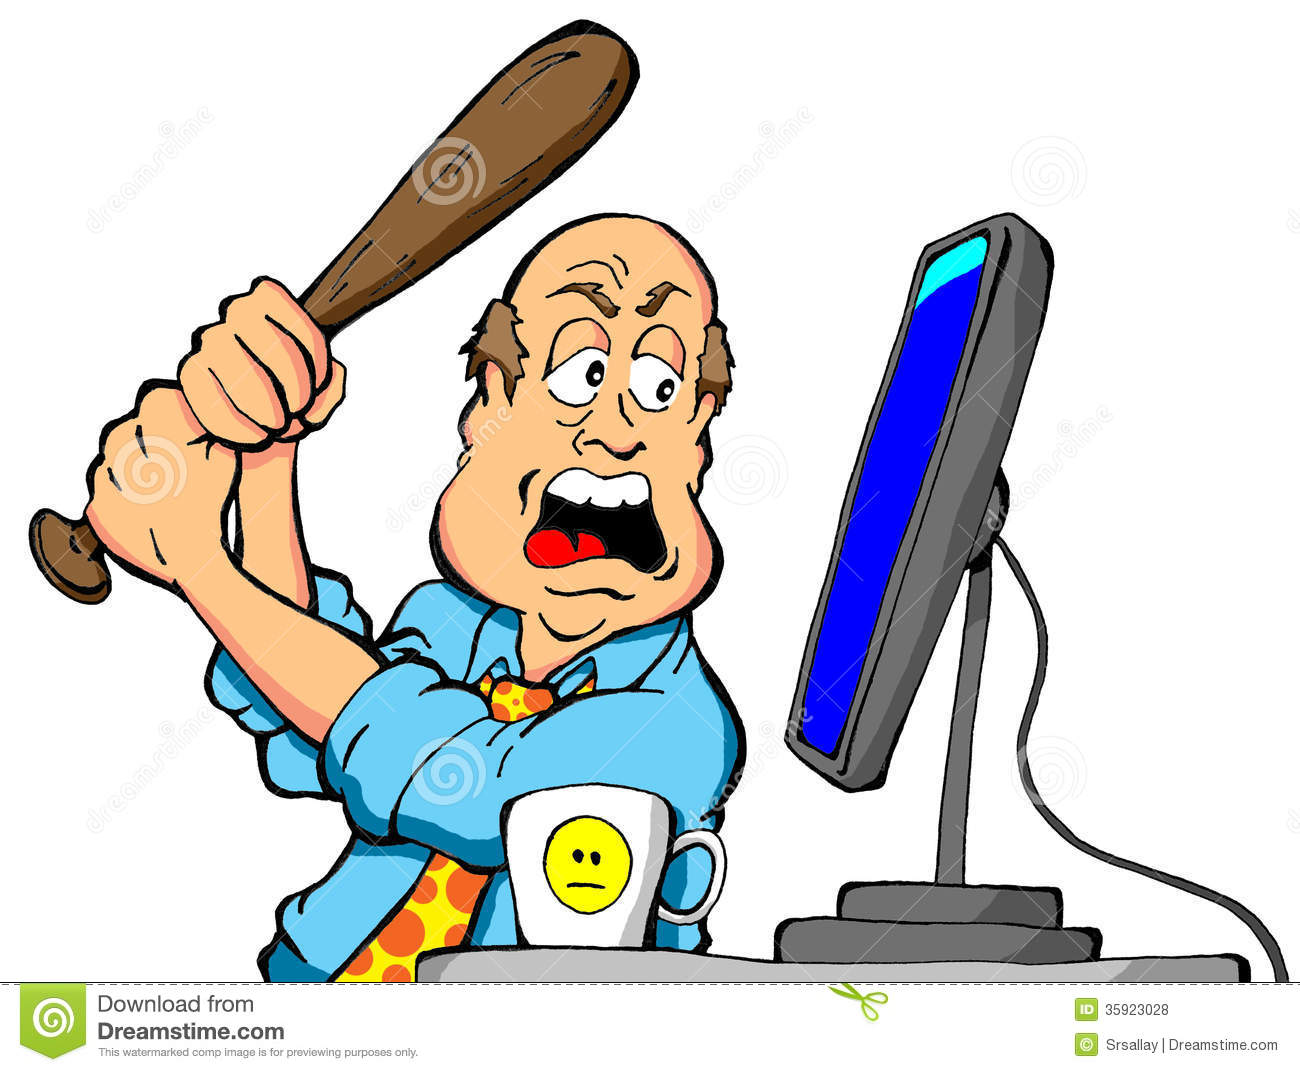 Cartoon Of An Angry Computer User About To Destroy His Computer With A